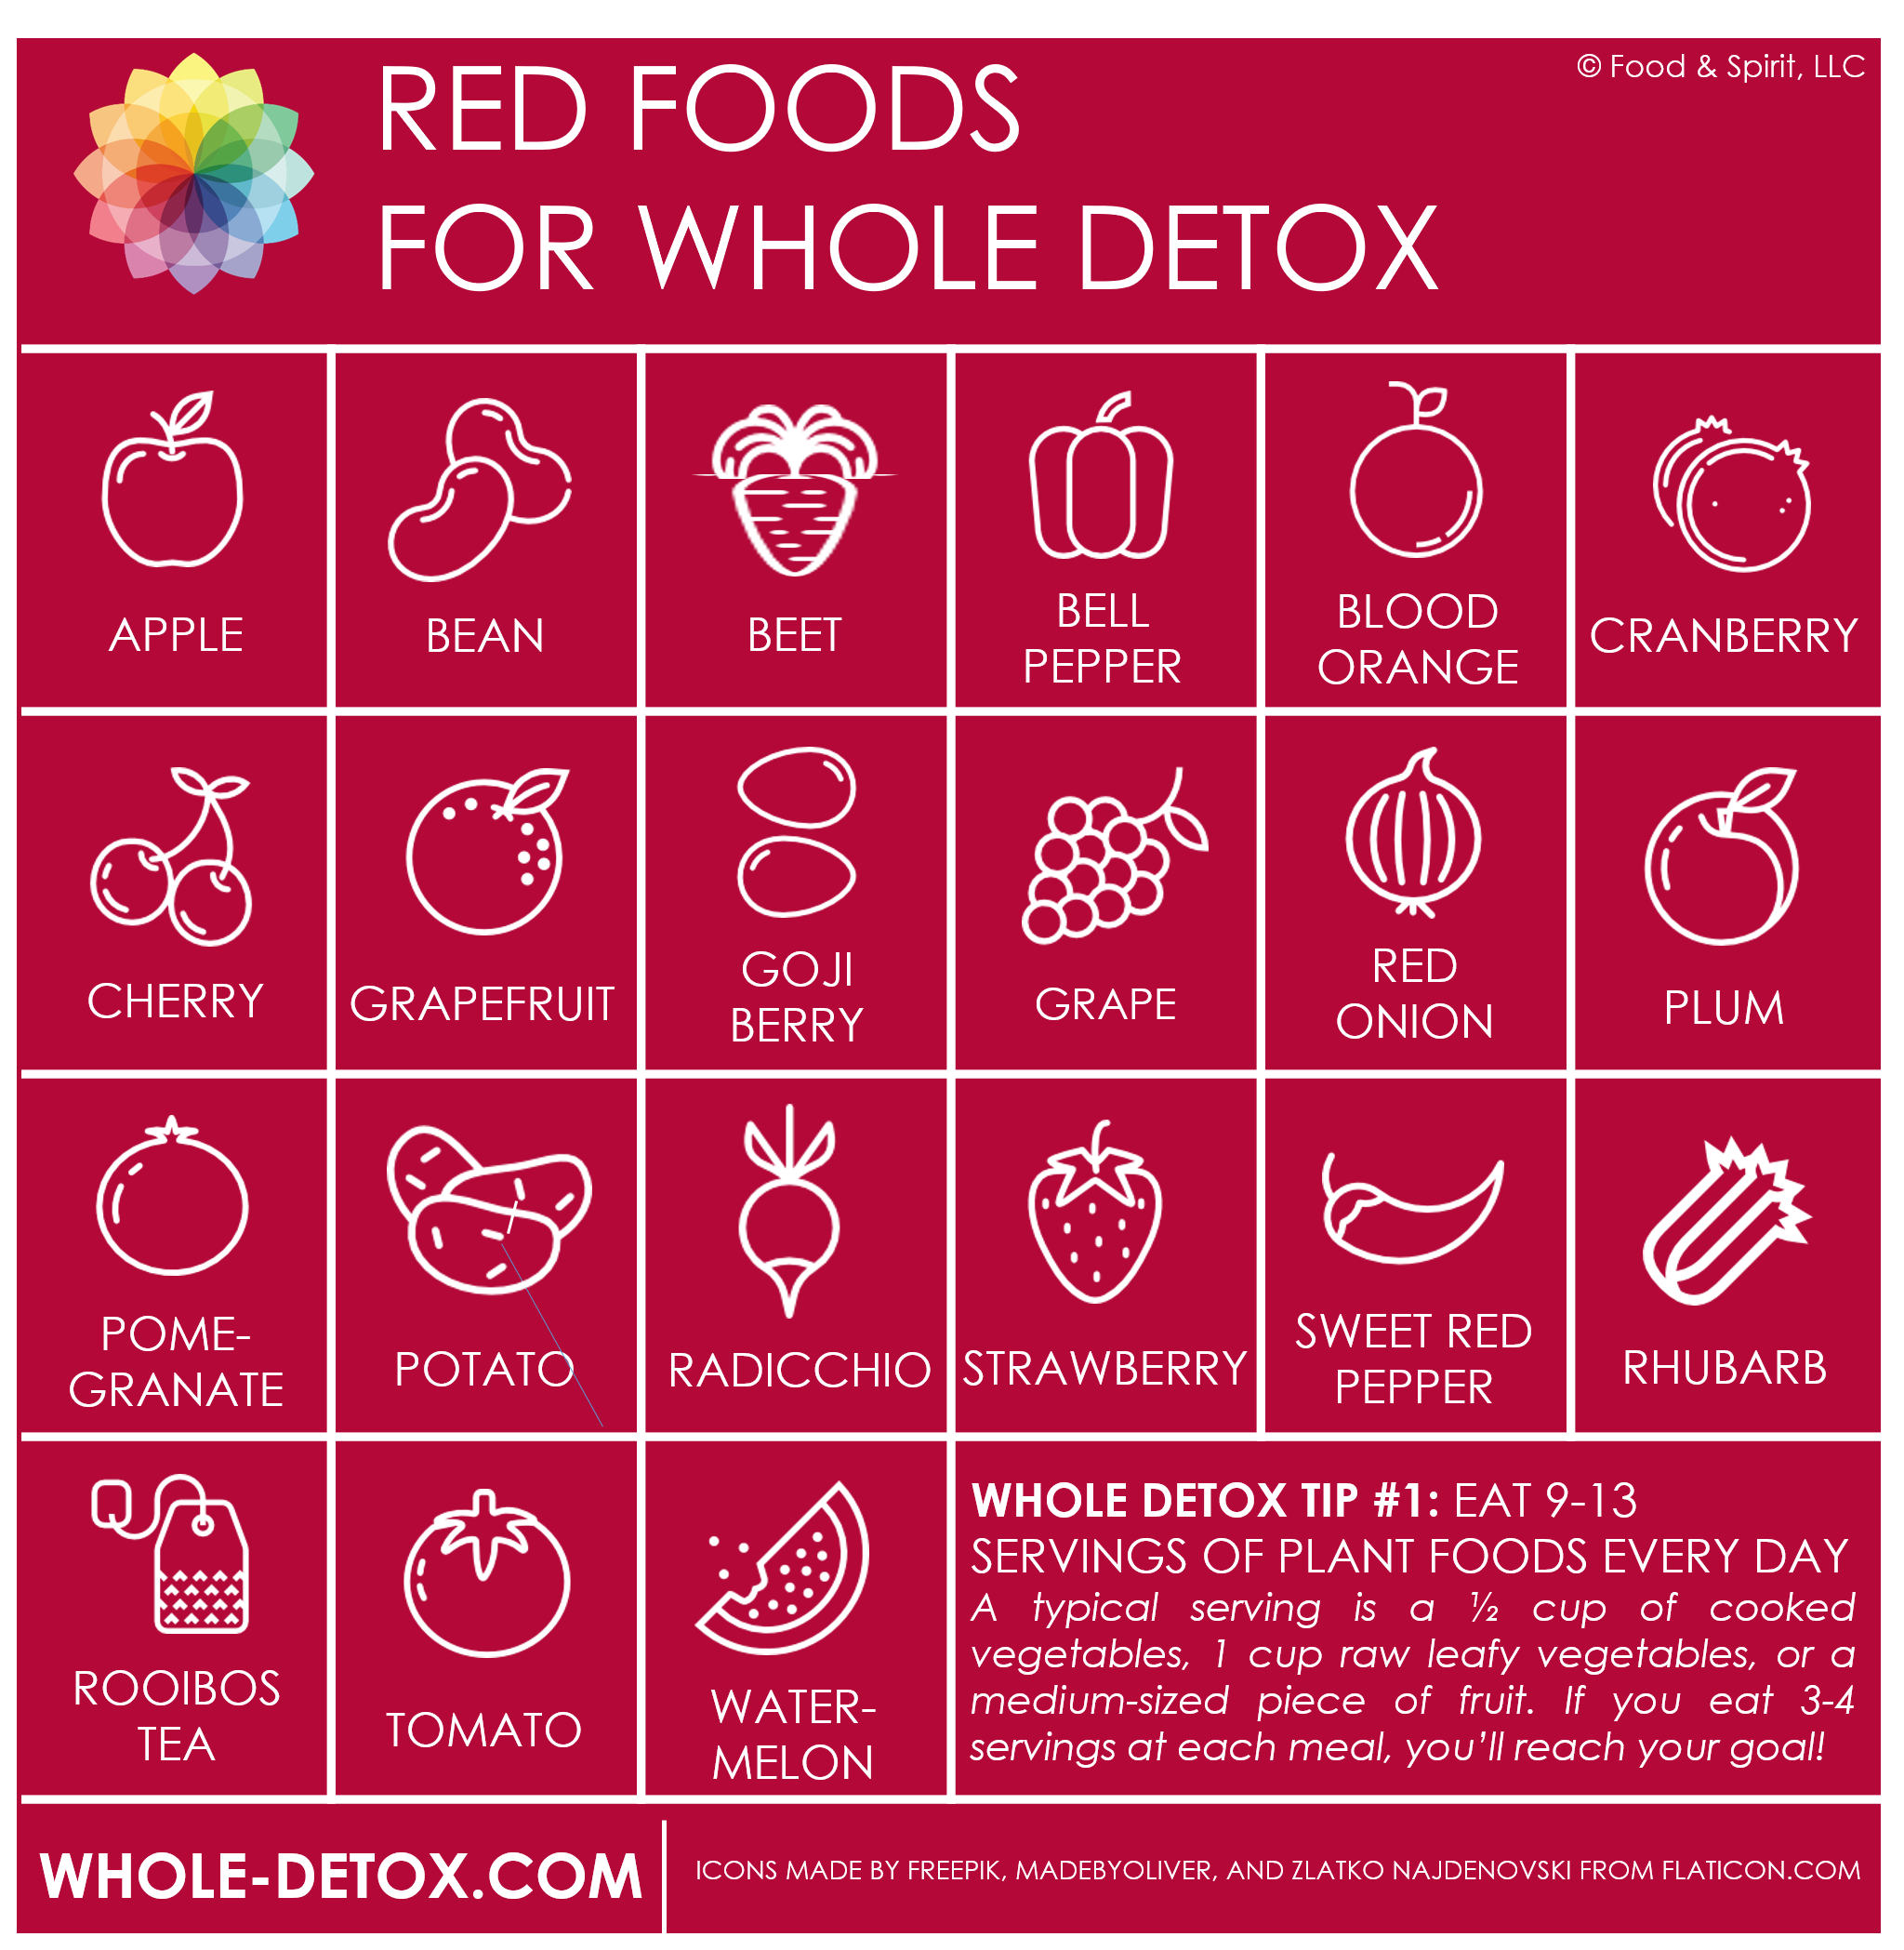 Red Phyto Infographic